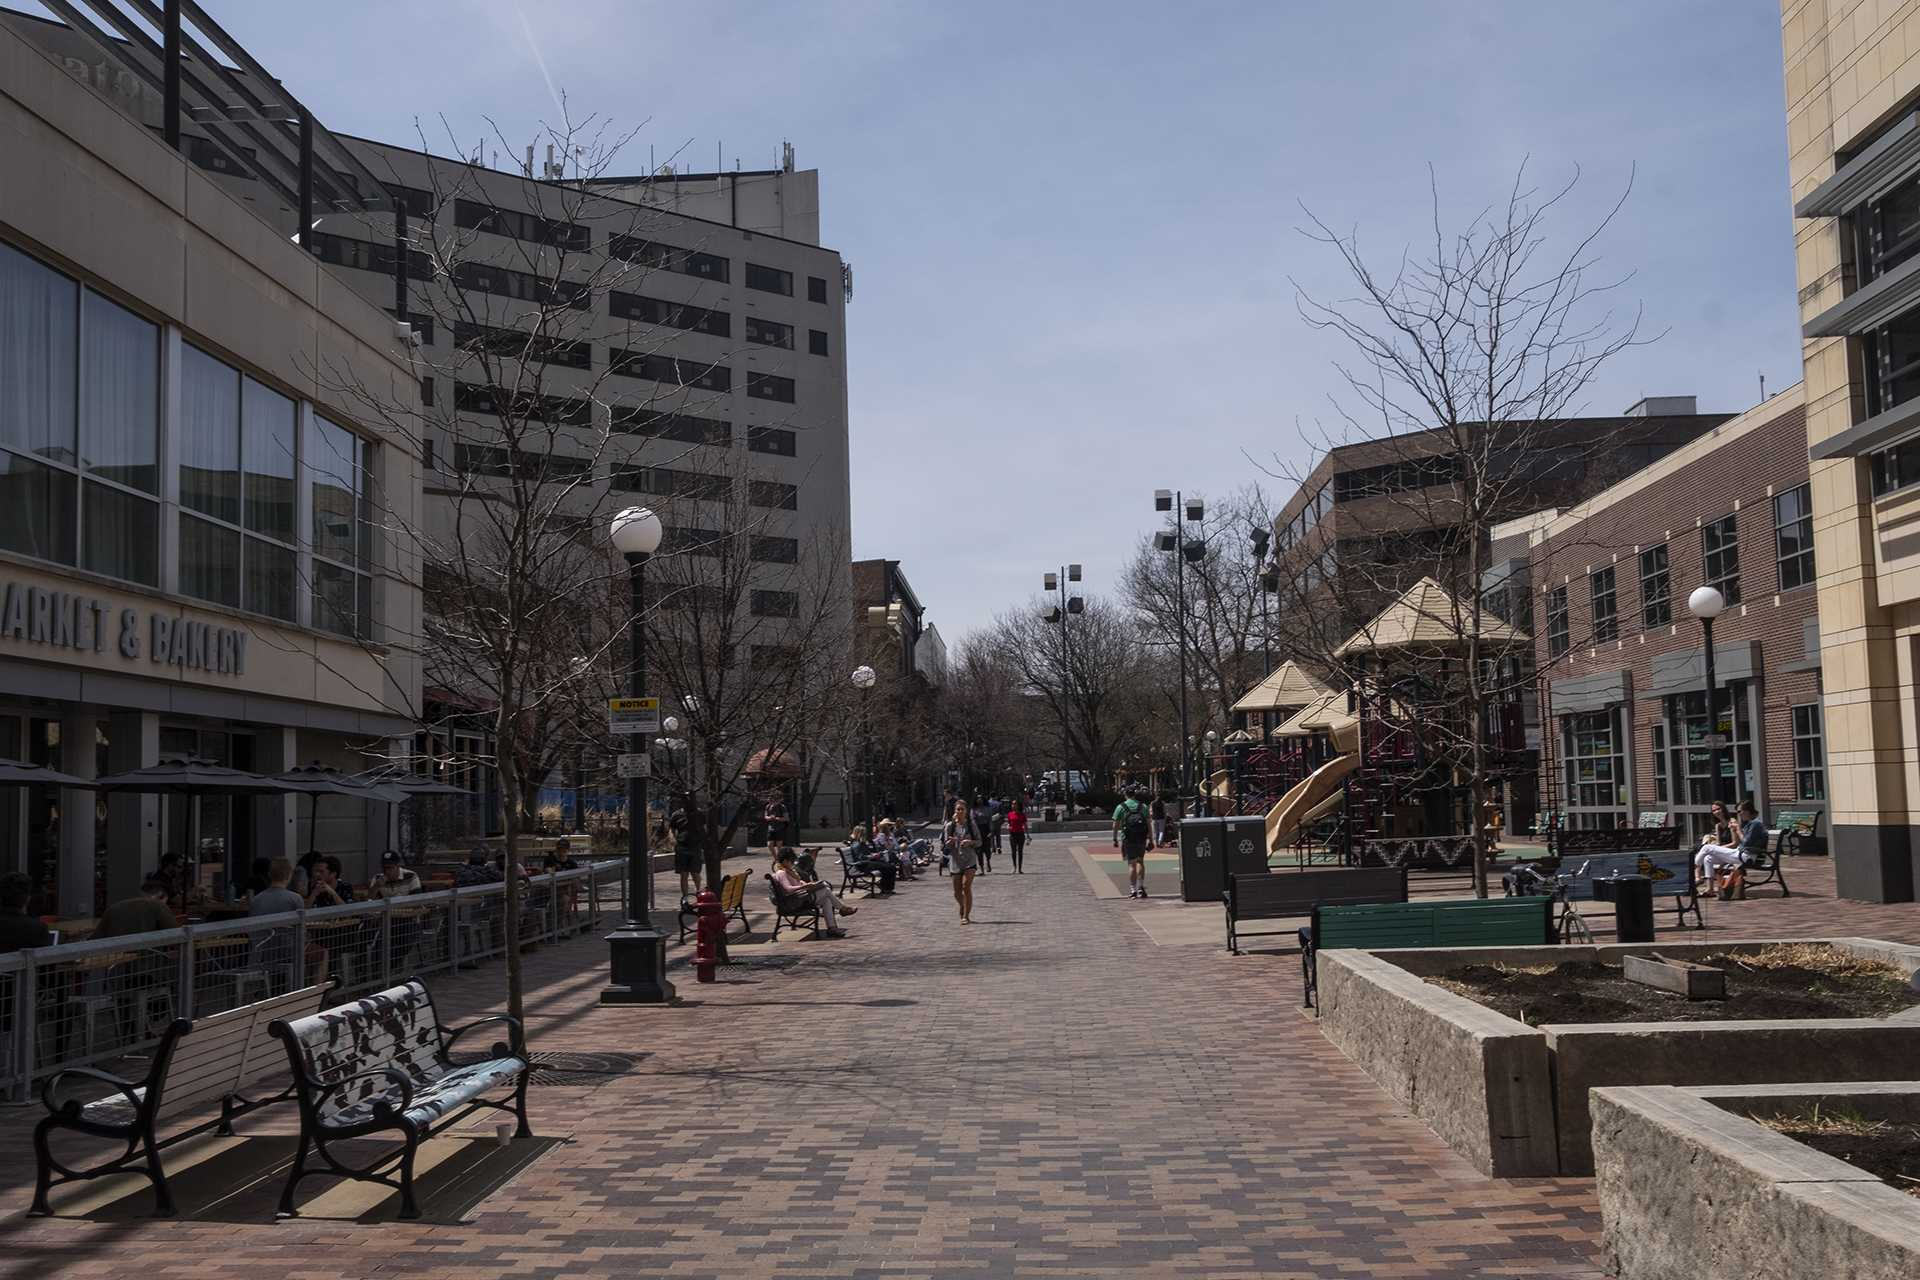 Local businesses confident in Ped Mall construction